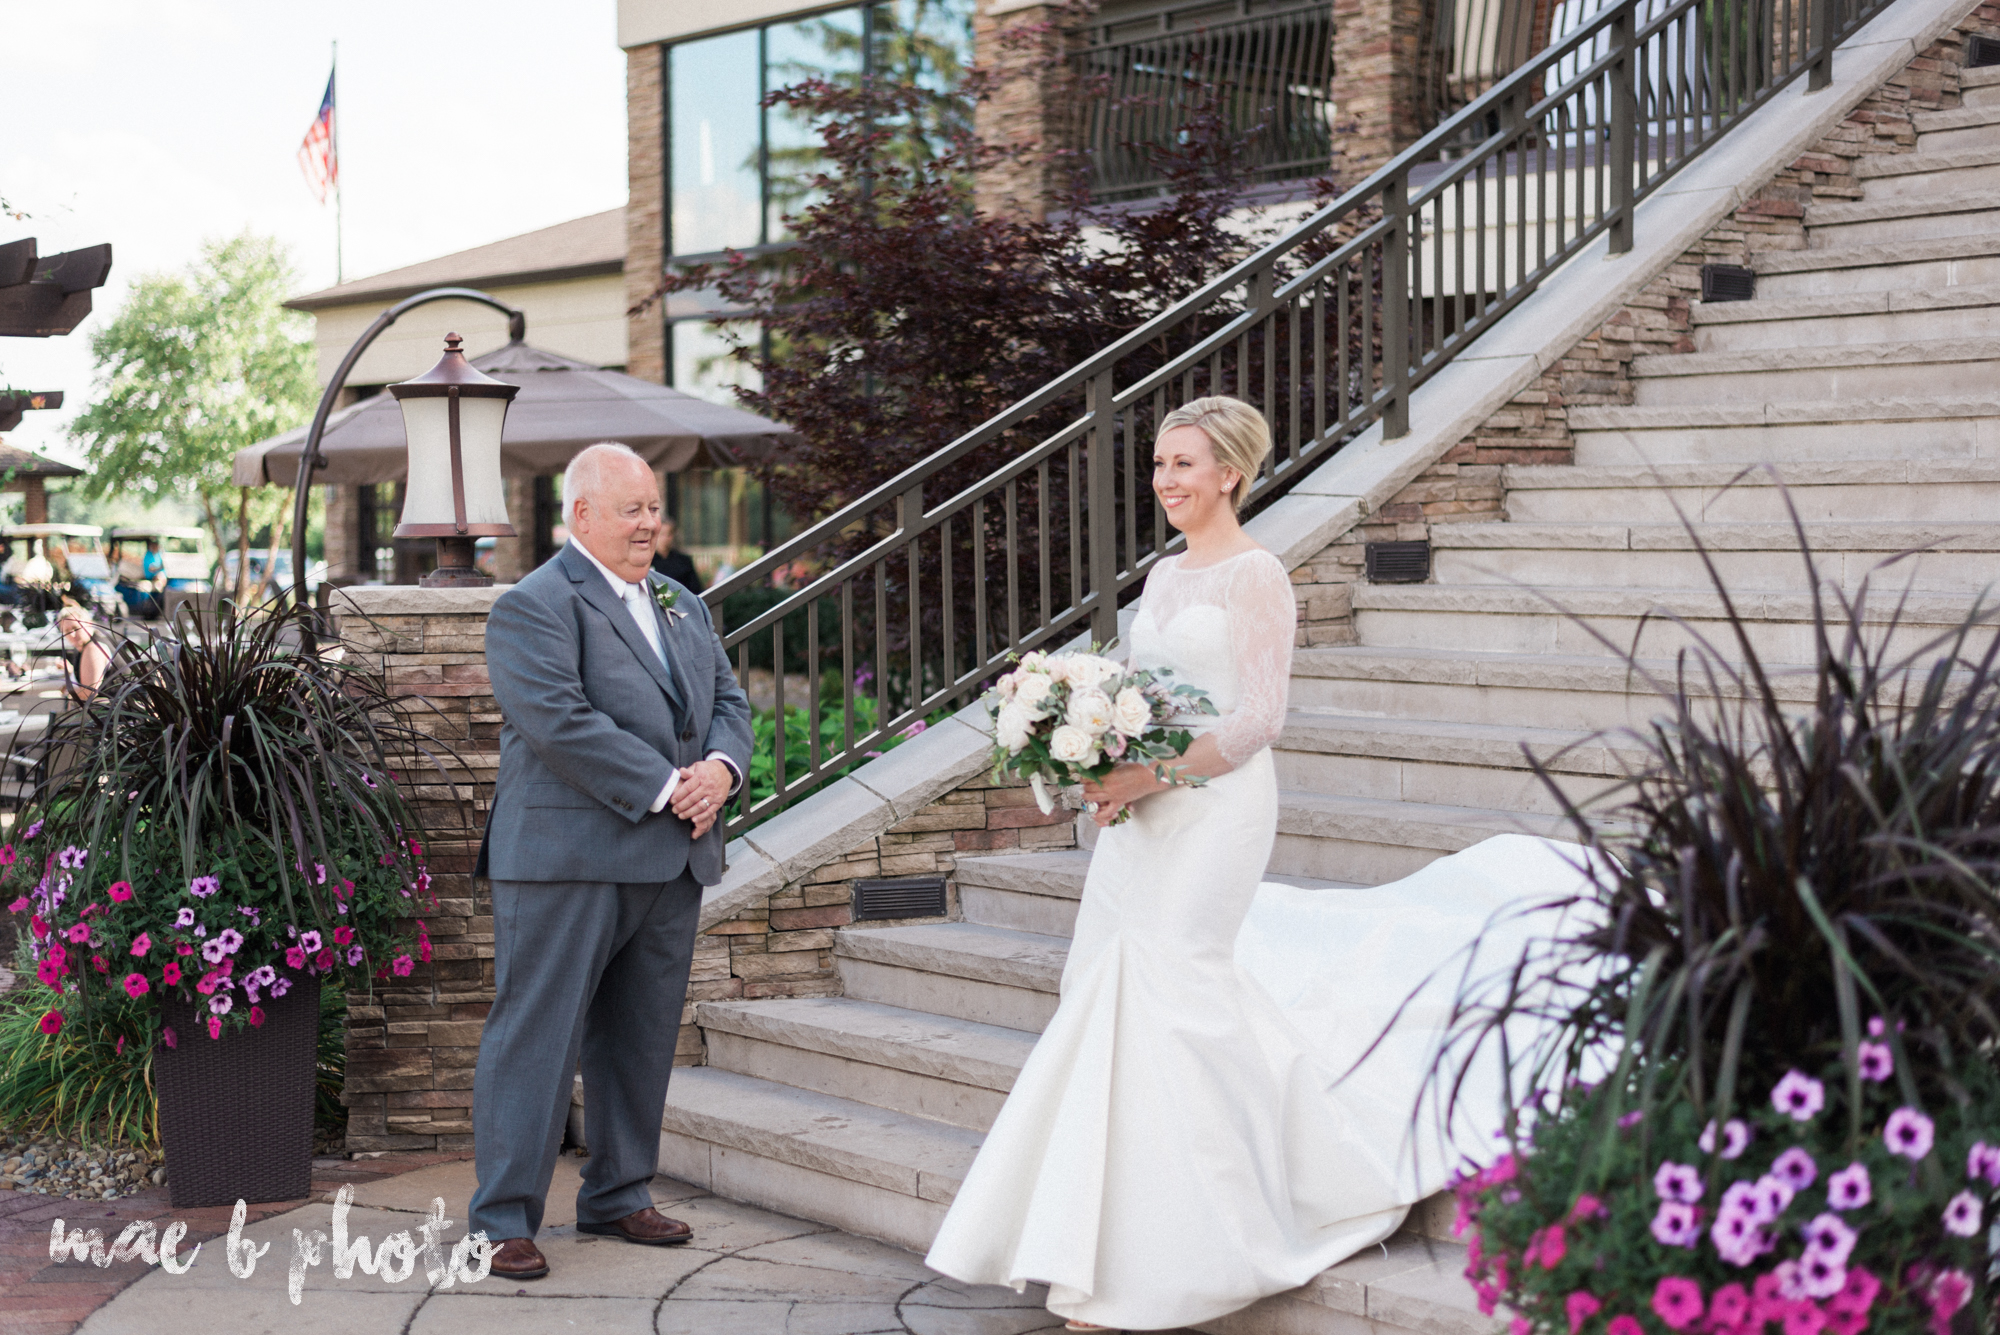 emily and michael's industrial chic summer country club wedding at the lake club in poland ohio photographed by cleveland wedding photographer mae b photo-95.jpg